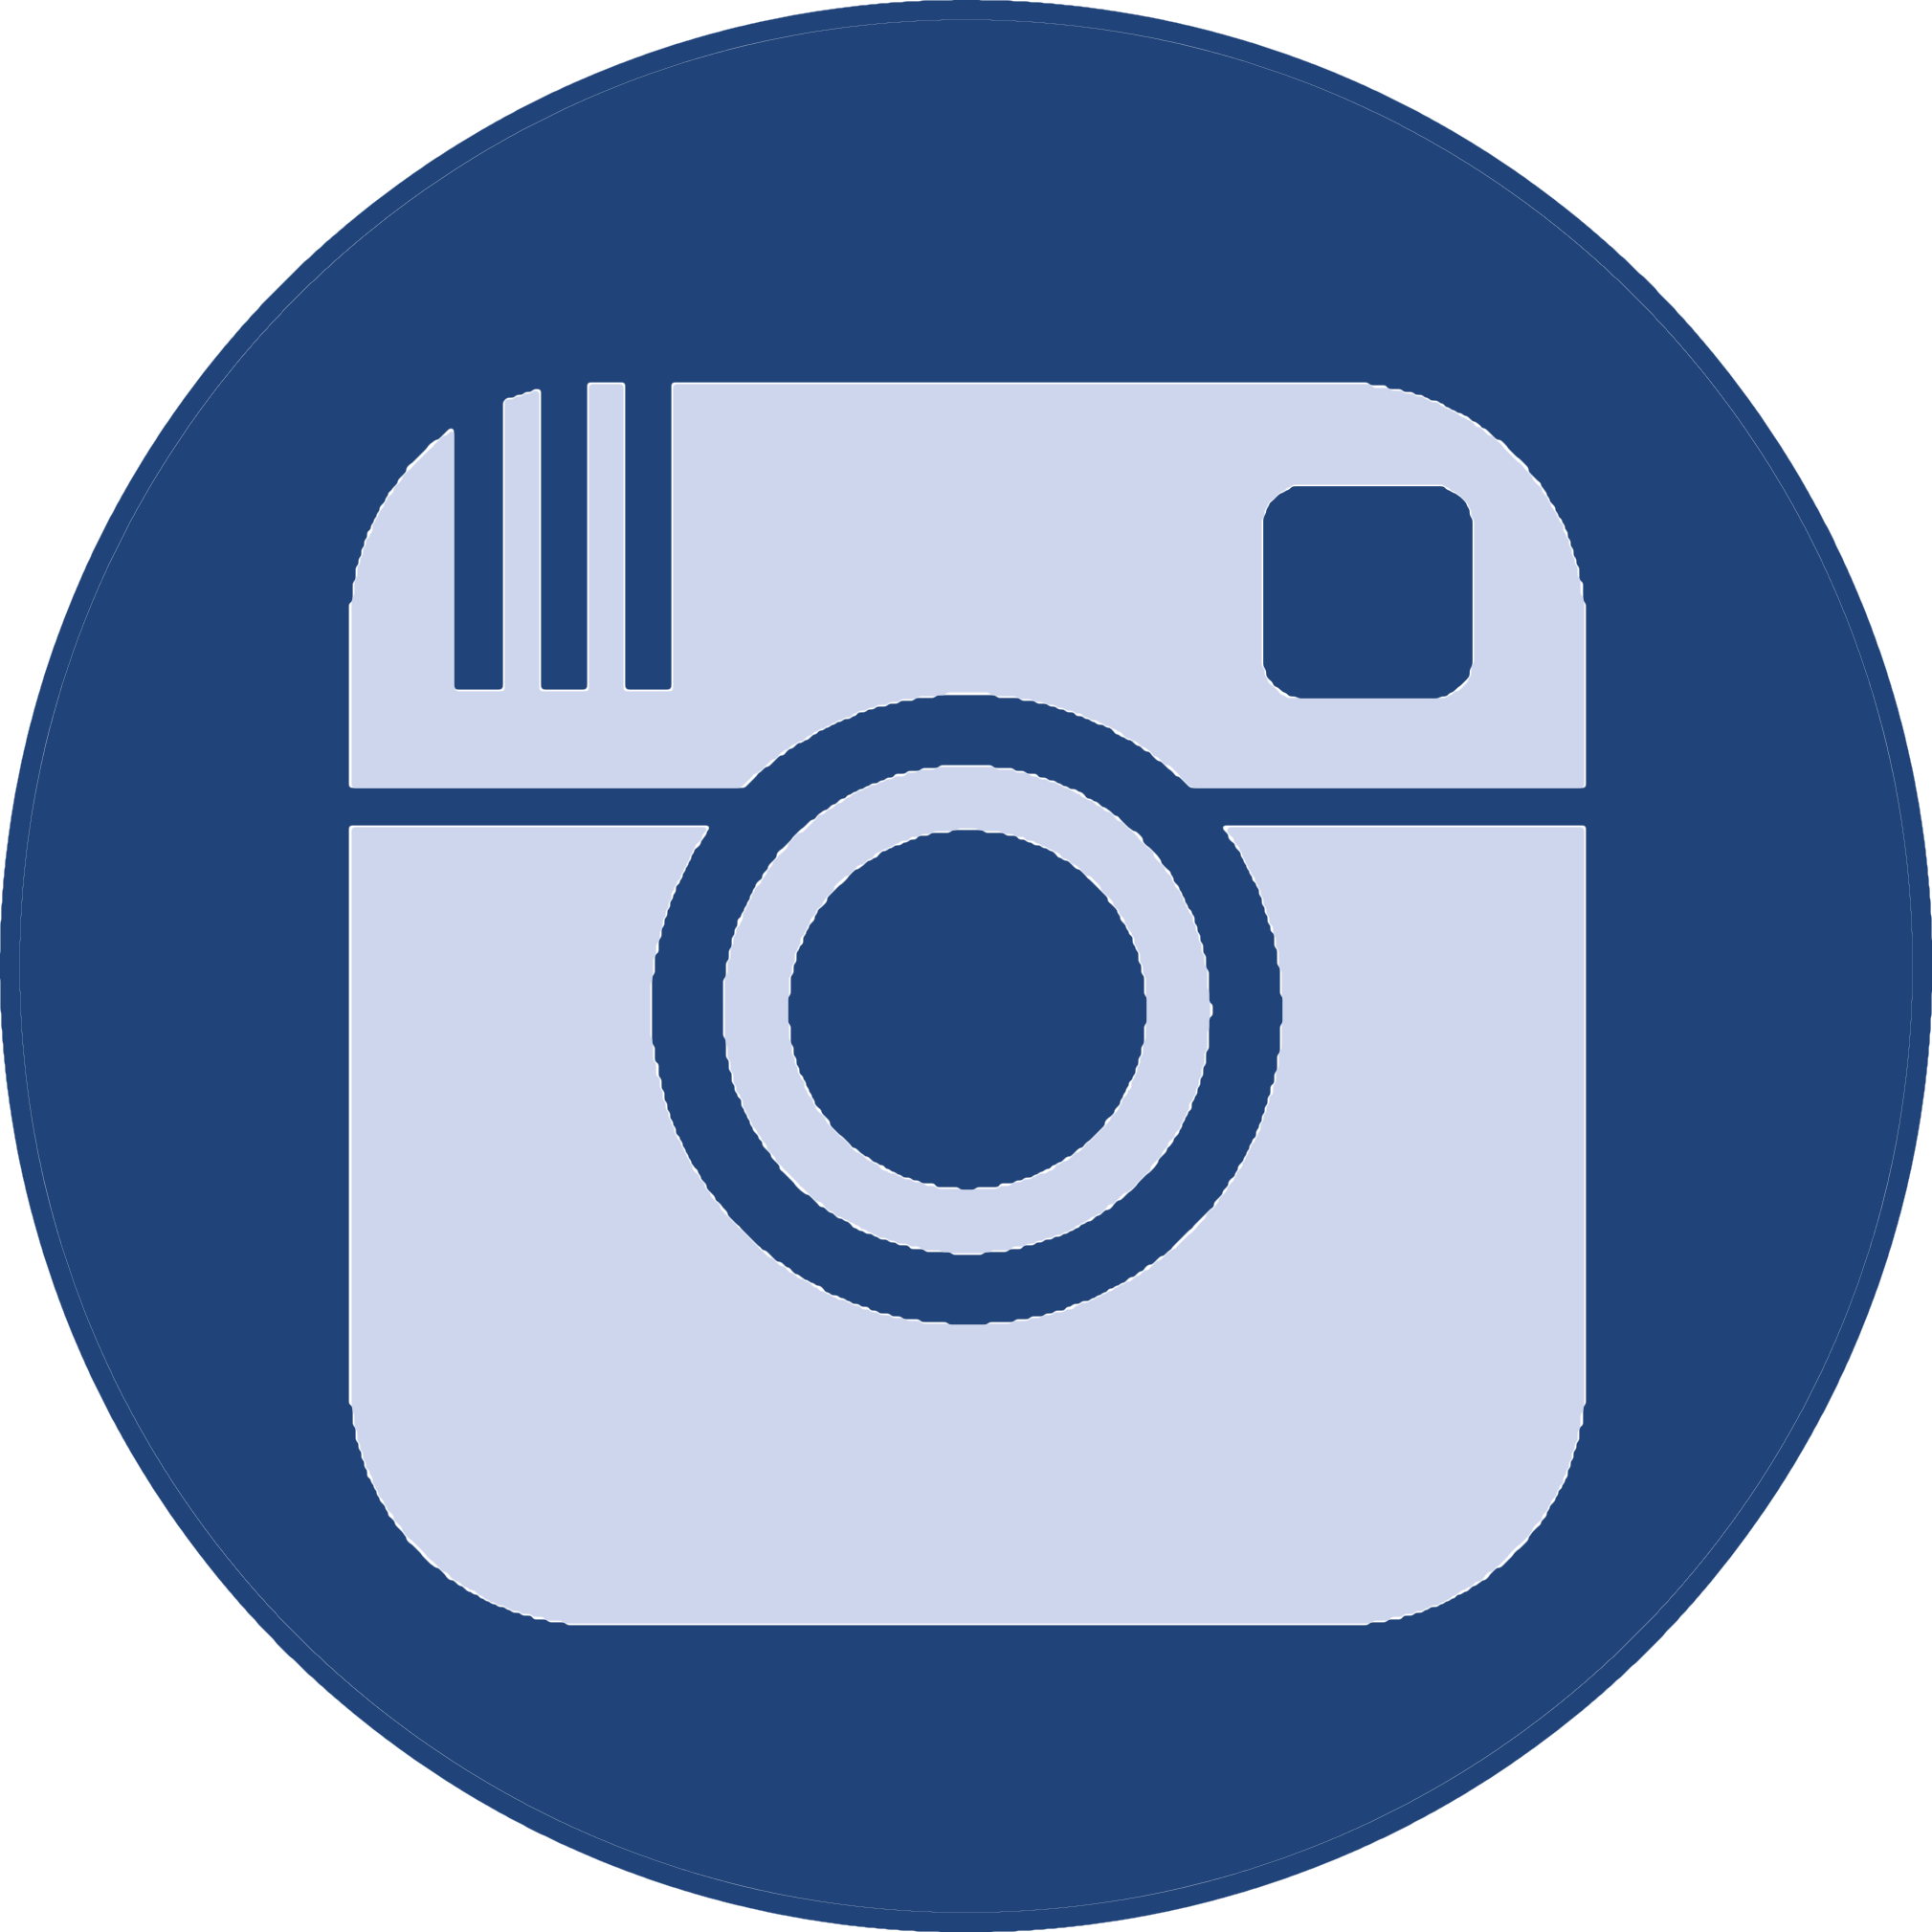 instagram-circle-icon